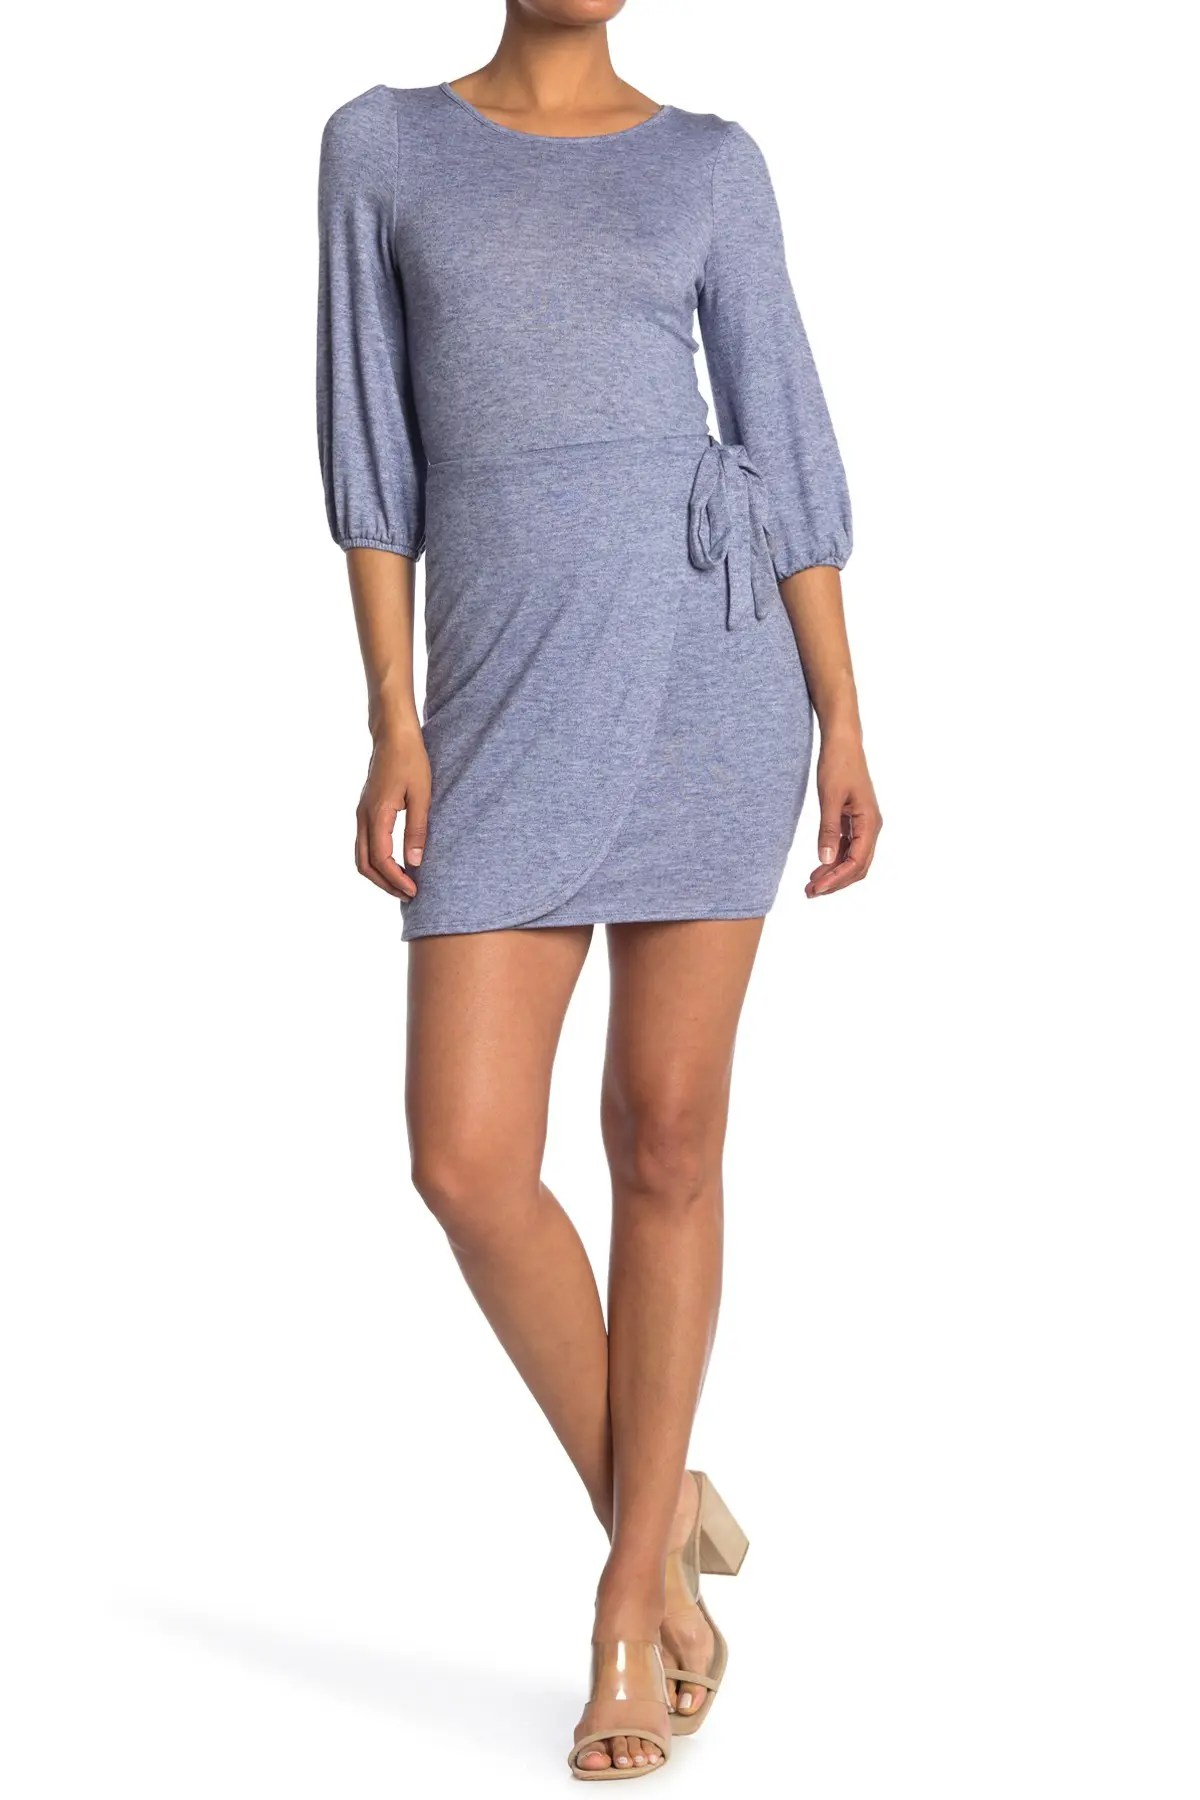 dresses for women clearance nordstrom